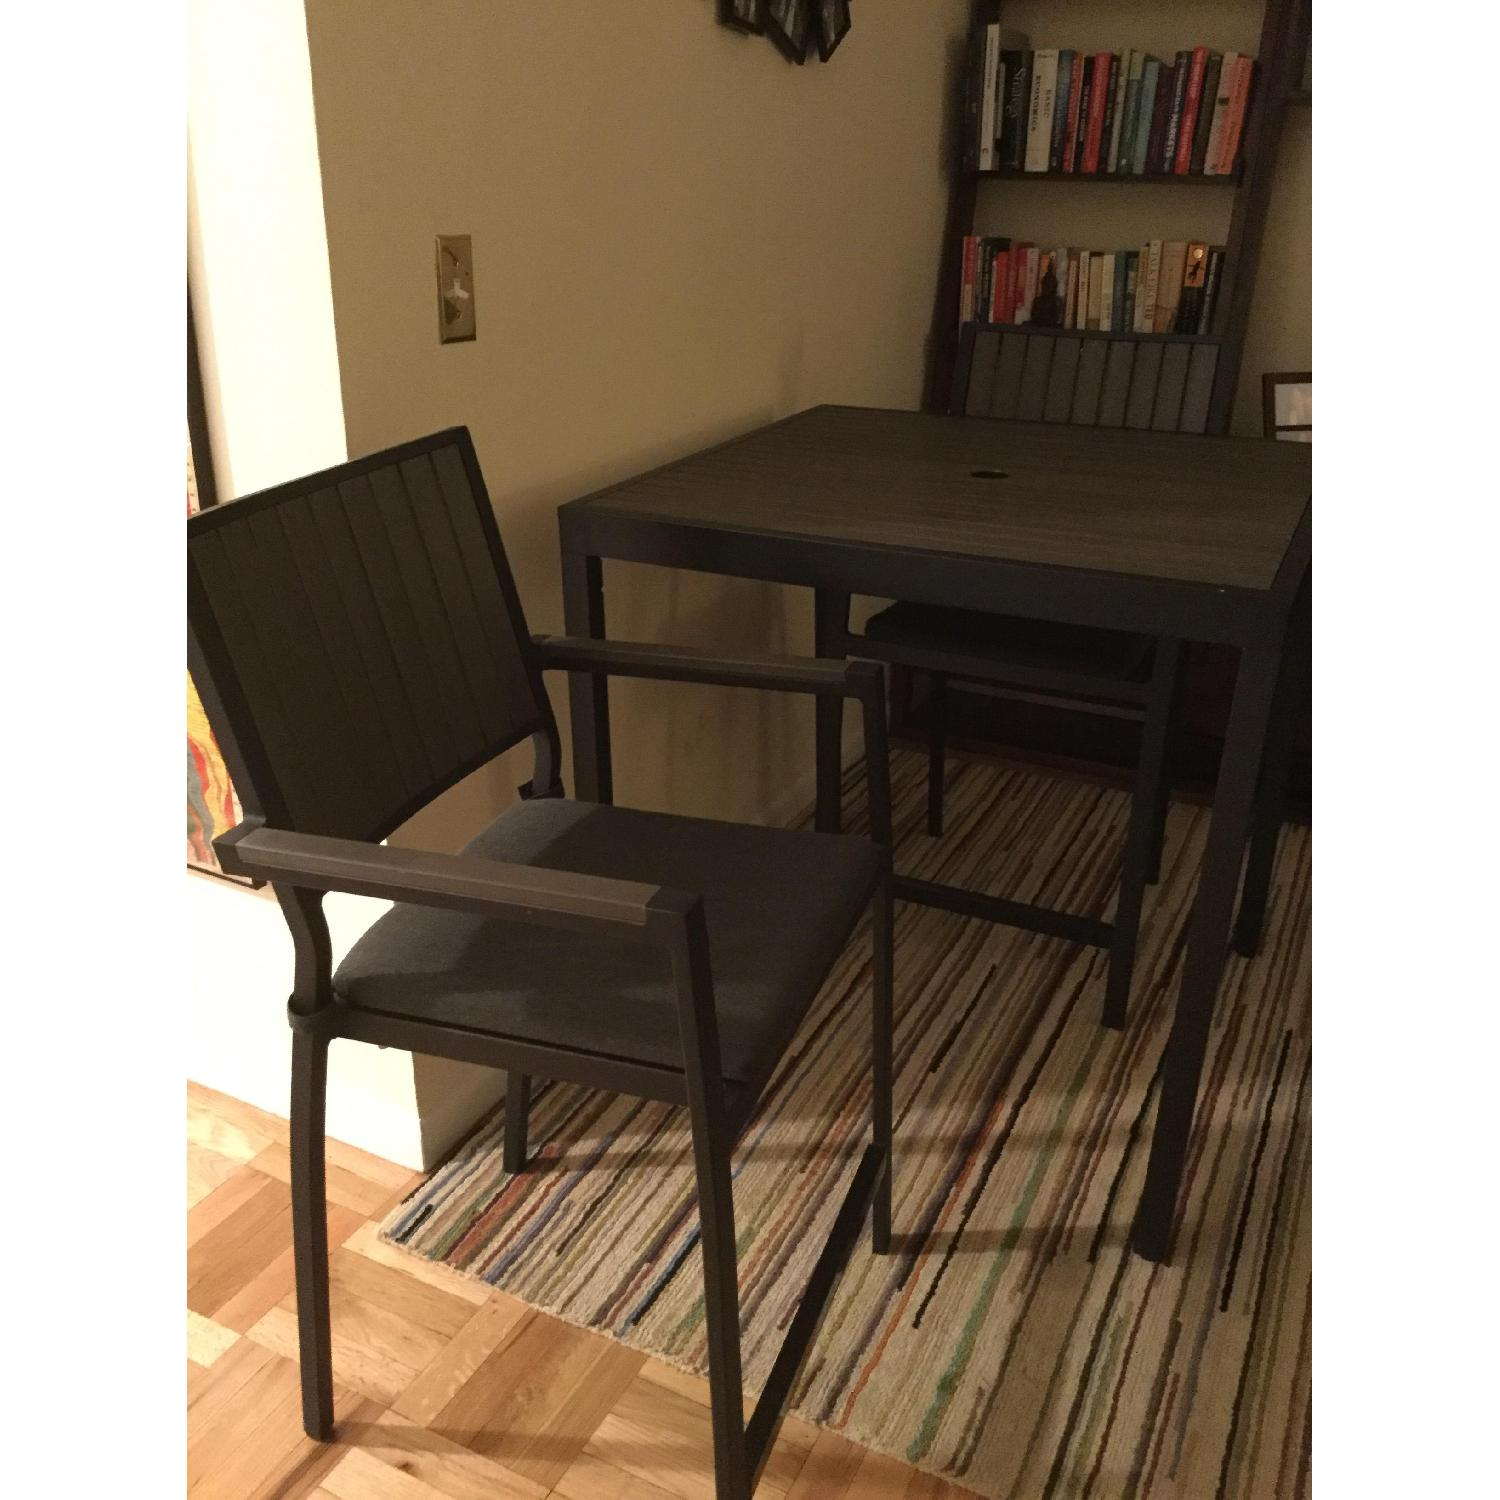 Crate & Barrel Alfresco Home Outdoor Dining Table w/ 2 Chairs - image-3